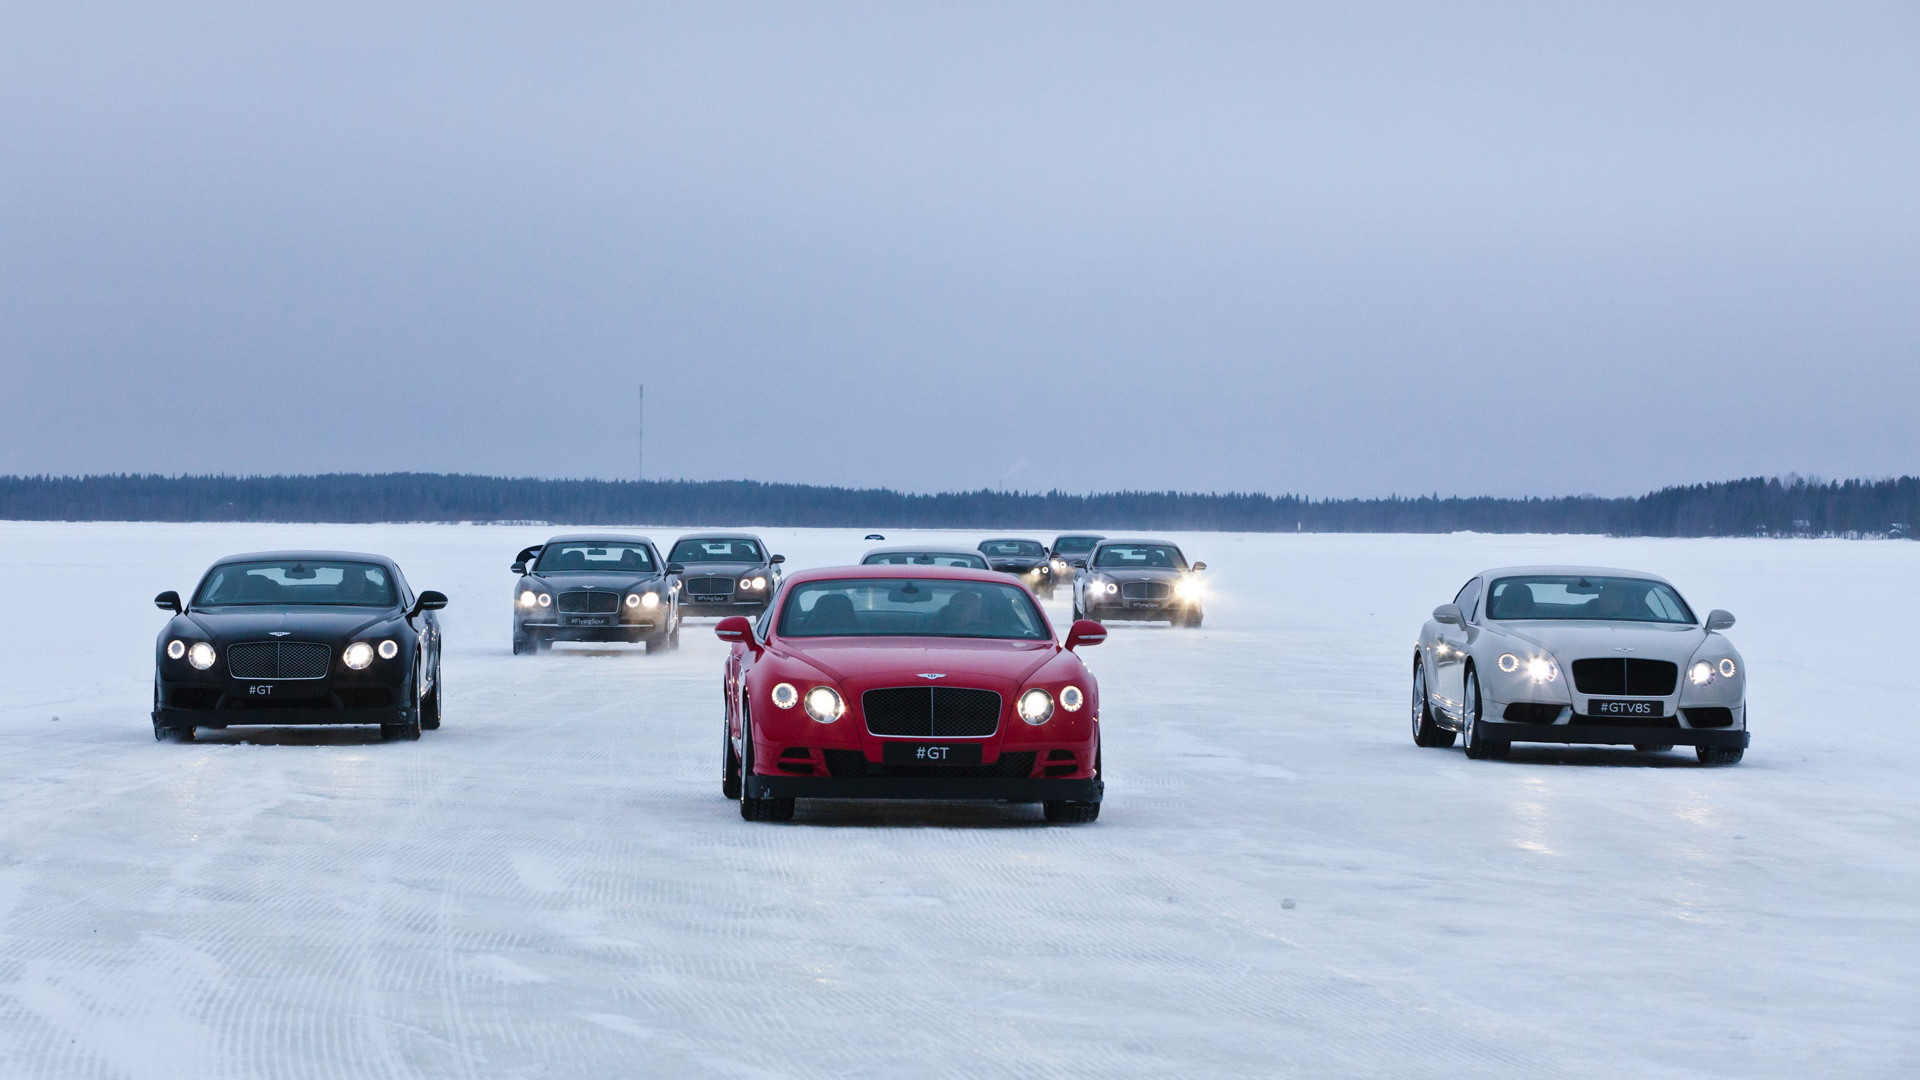 Bentley Power on Ice driving event